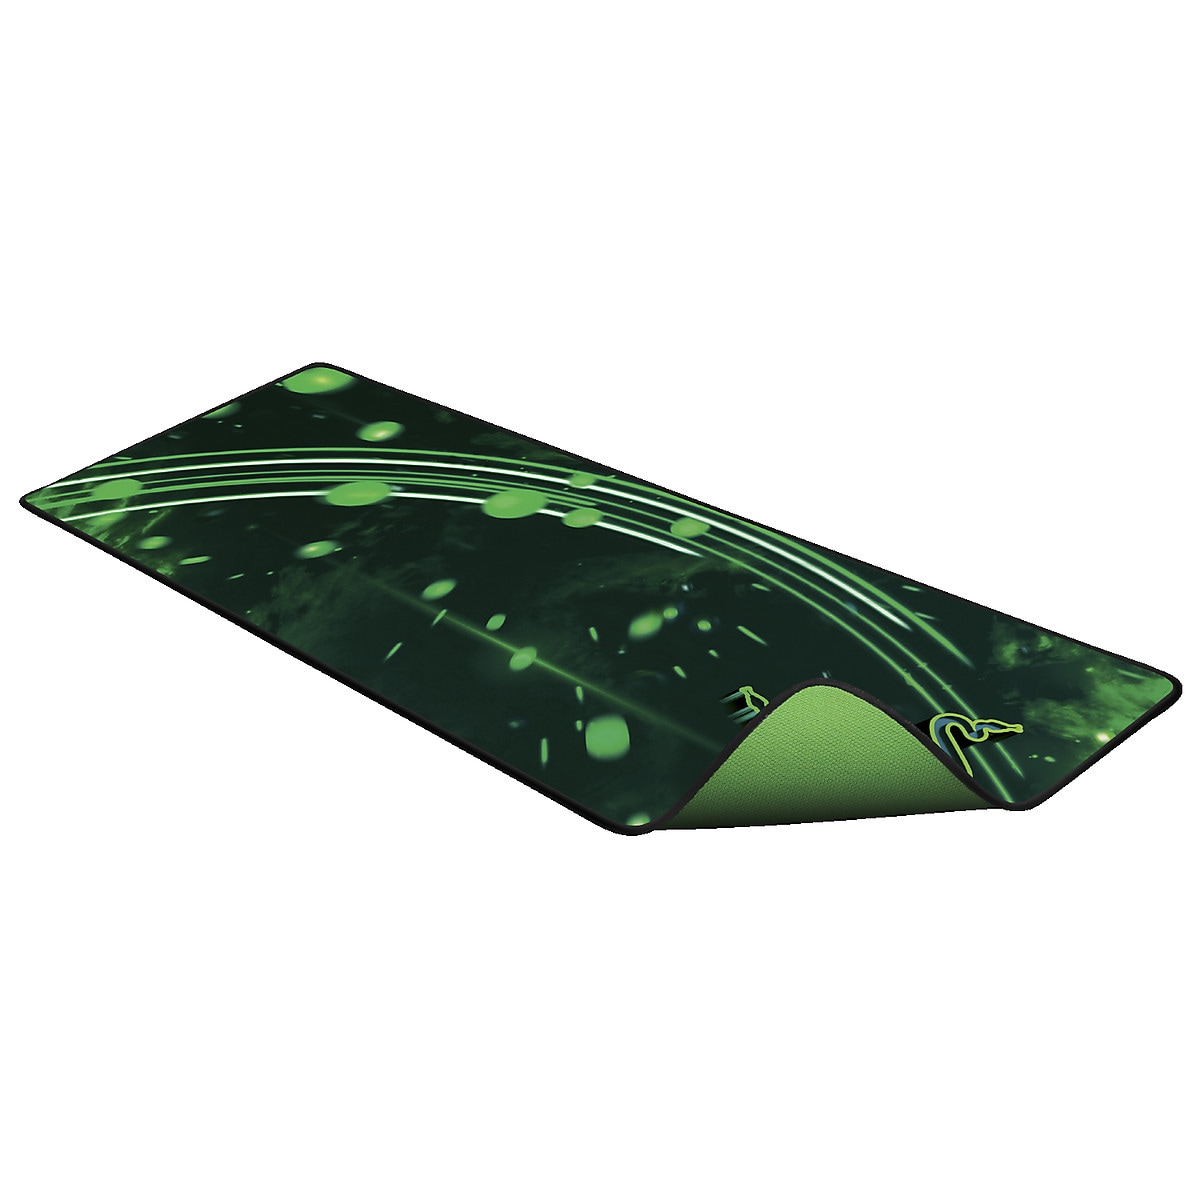 Razer Goliathus Extended Speed Edition Gaming Mouse Mat